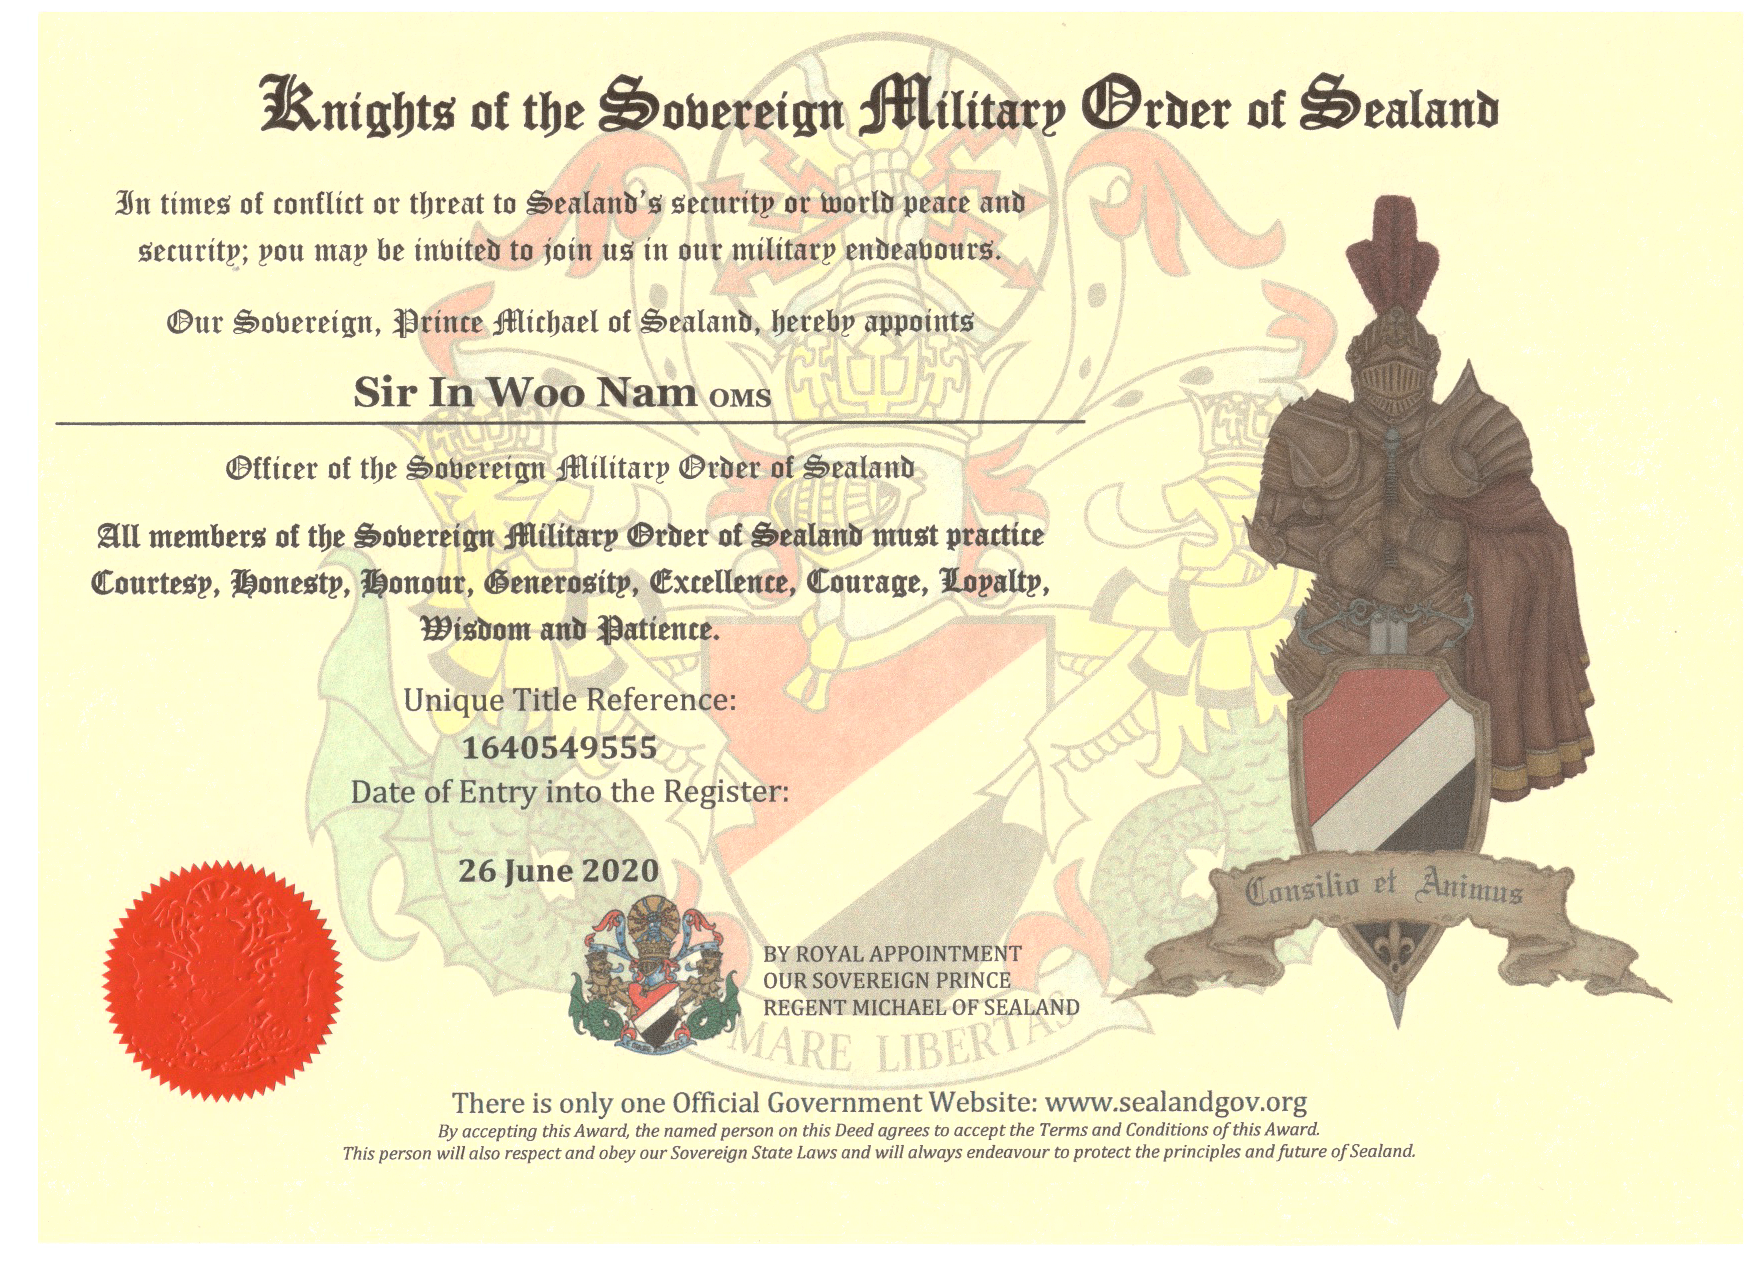 england in sealand knight sir nam in woo